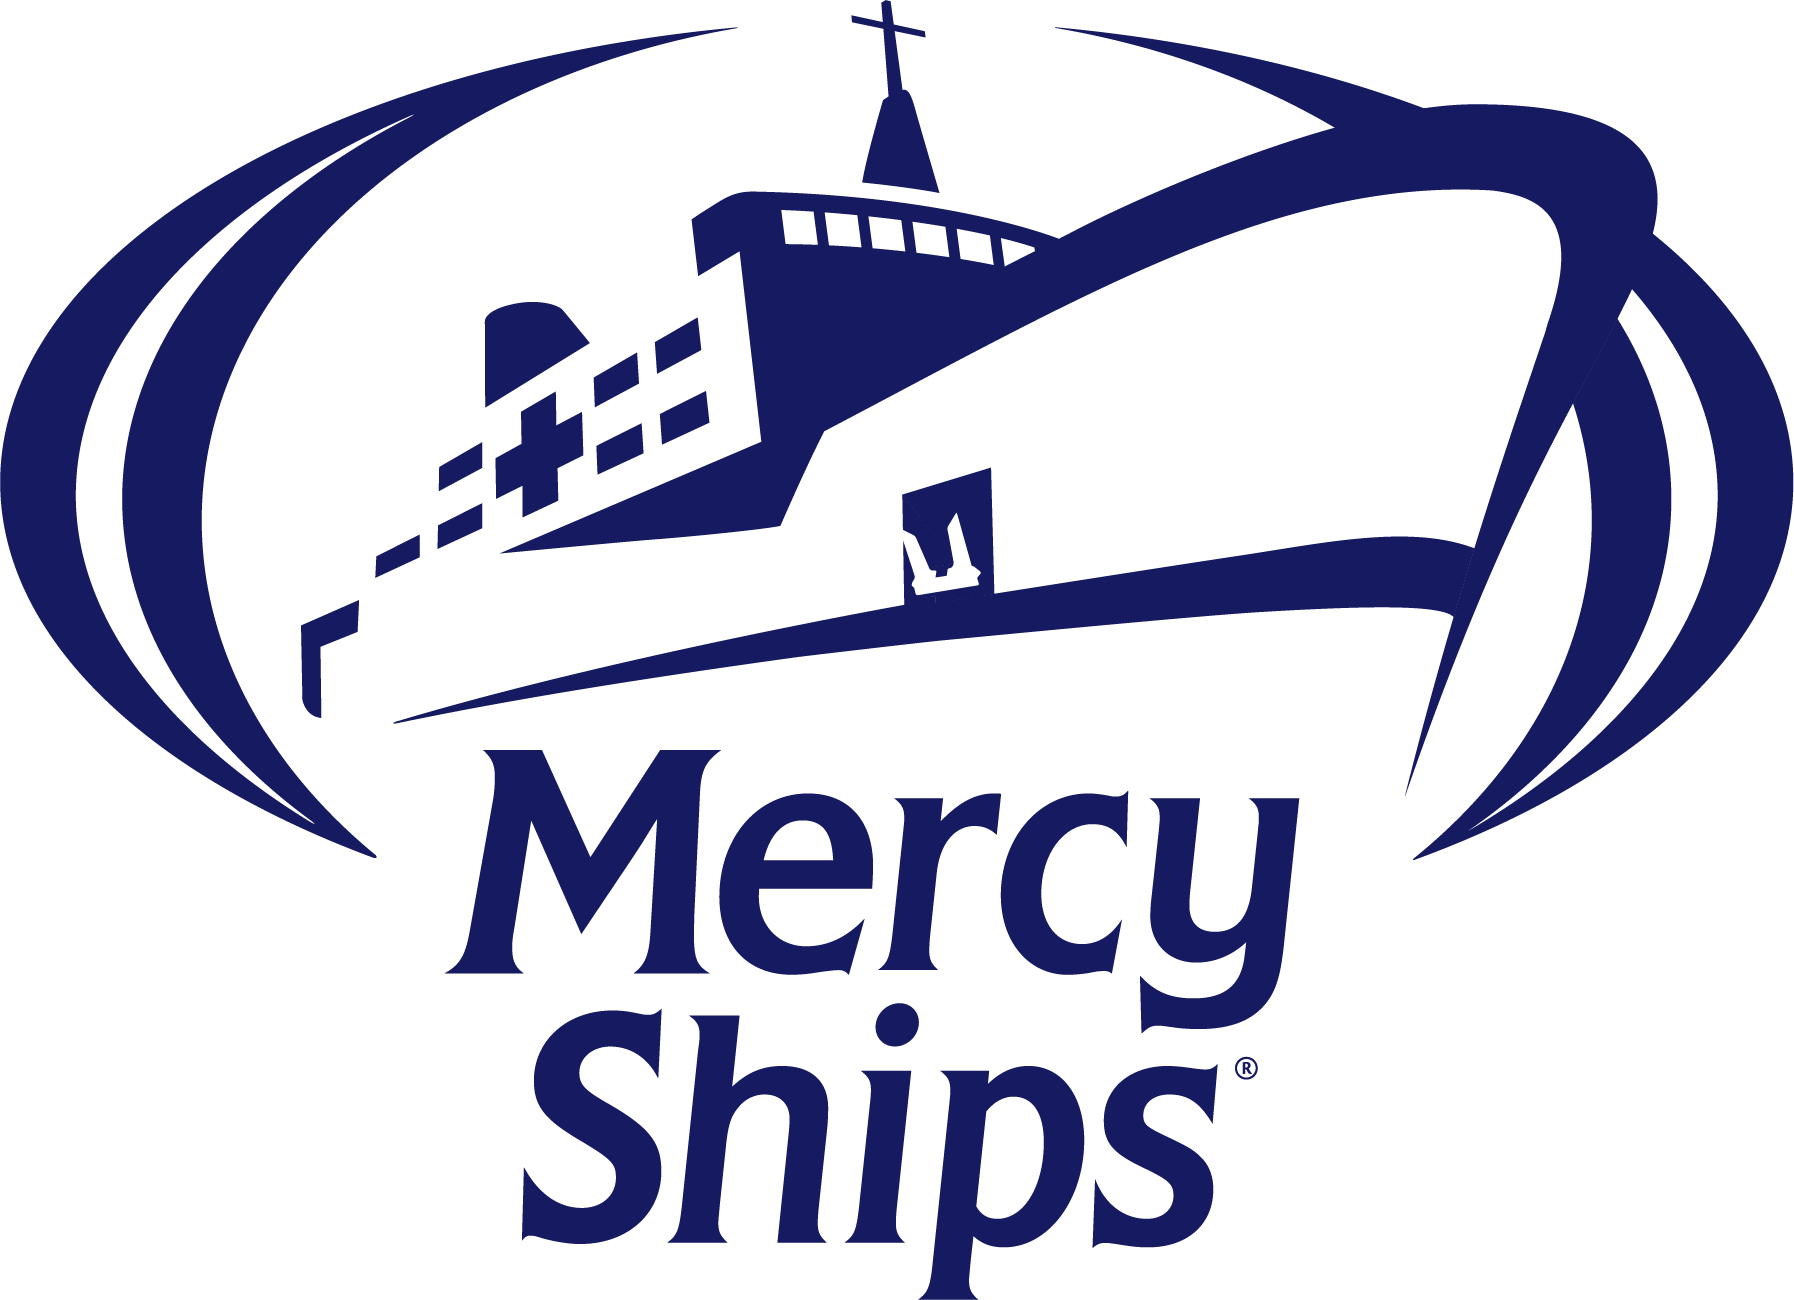 Mercy Ships brings healthcare and hope to underserved communities with the help of Atlassian